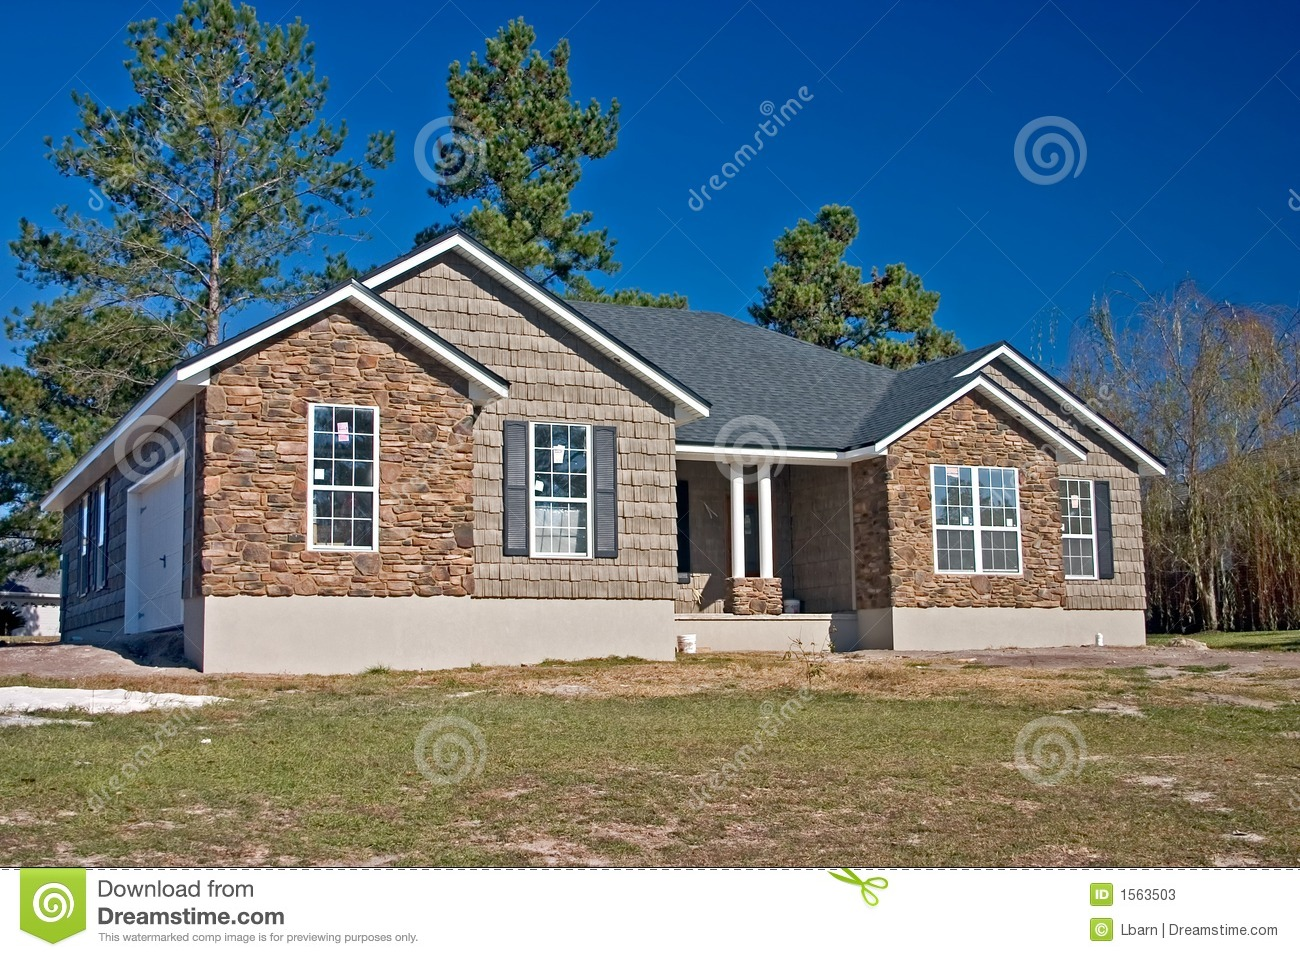 New house stone and shake exterior stock photos image for Shakes on house